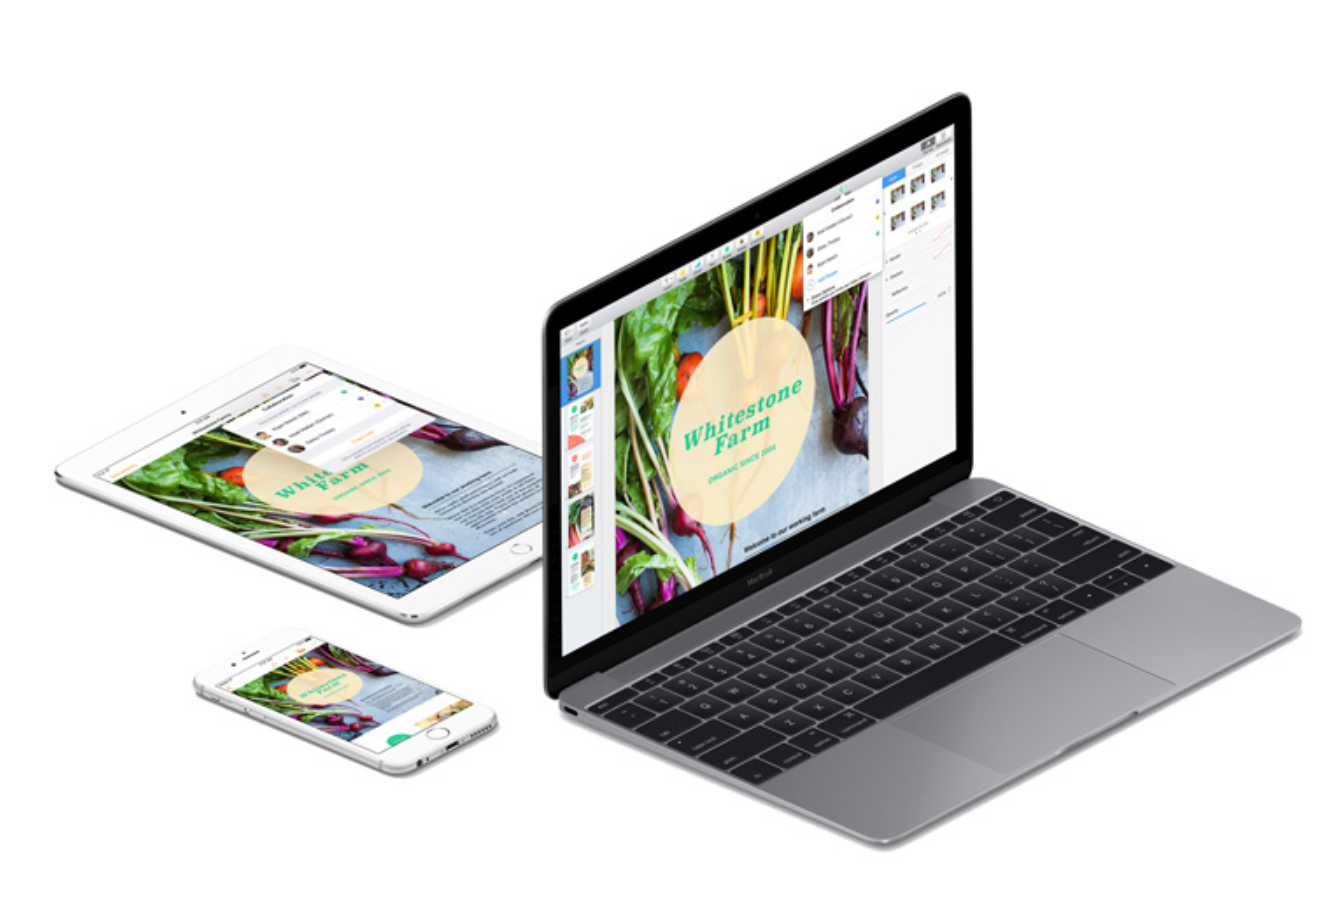 Download Gratis iLife dan iWork for iOS dan Mac